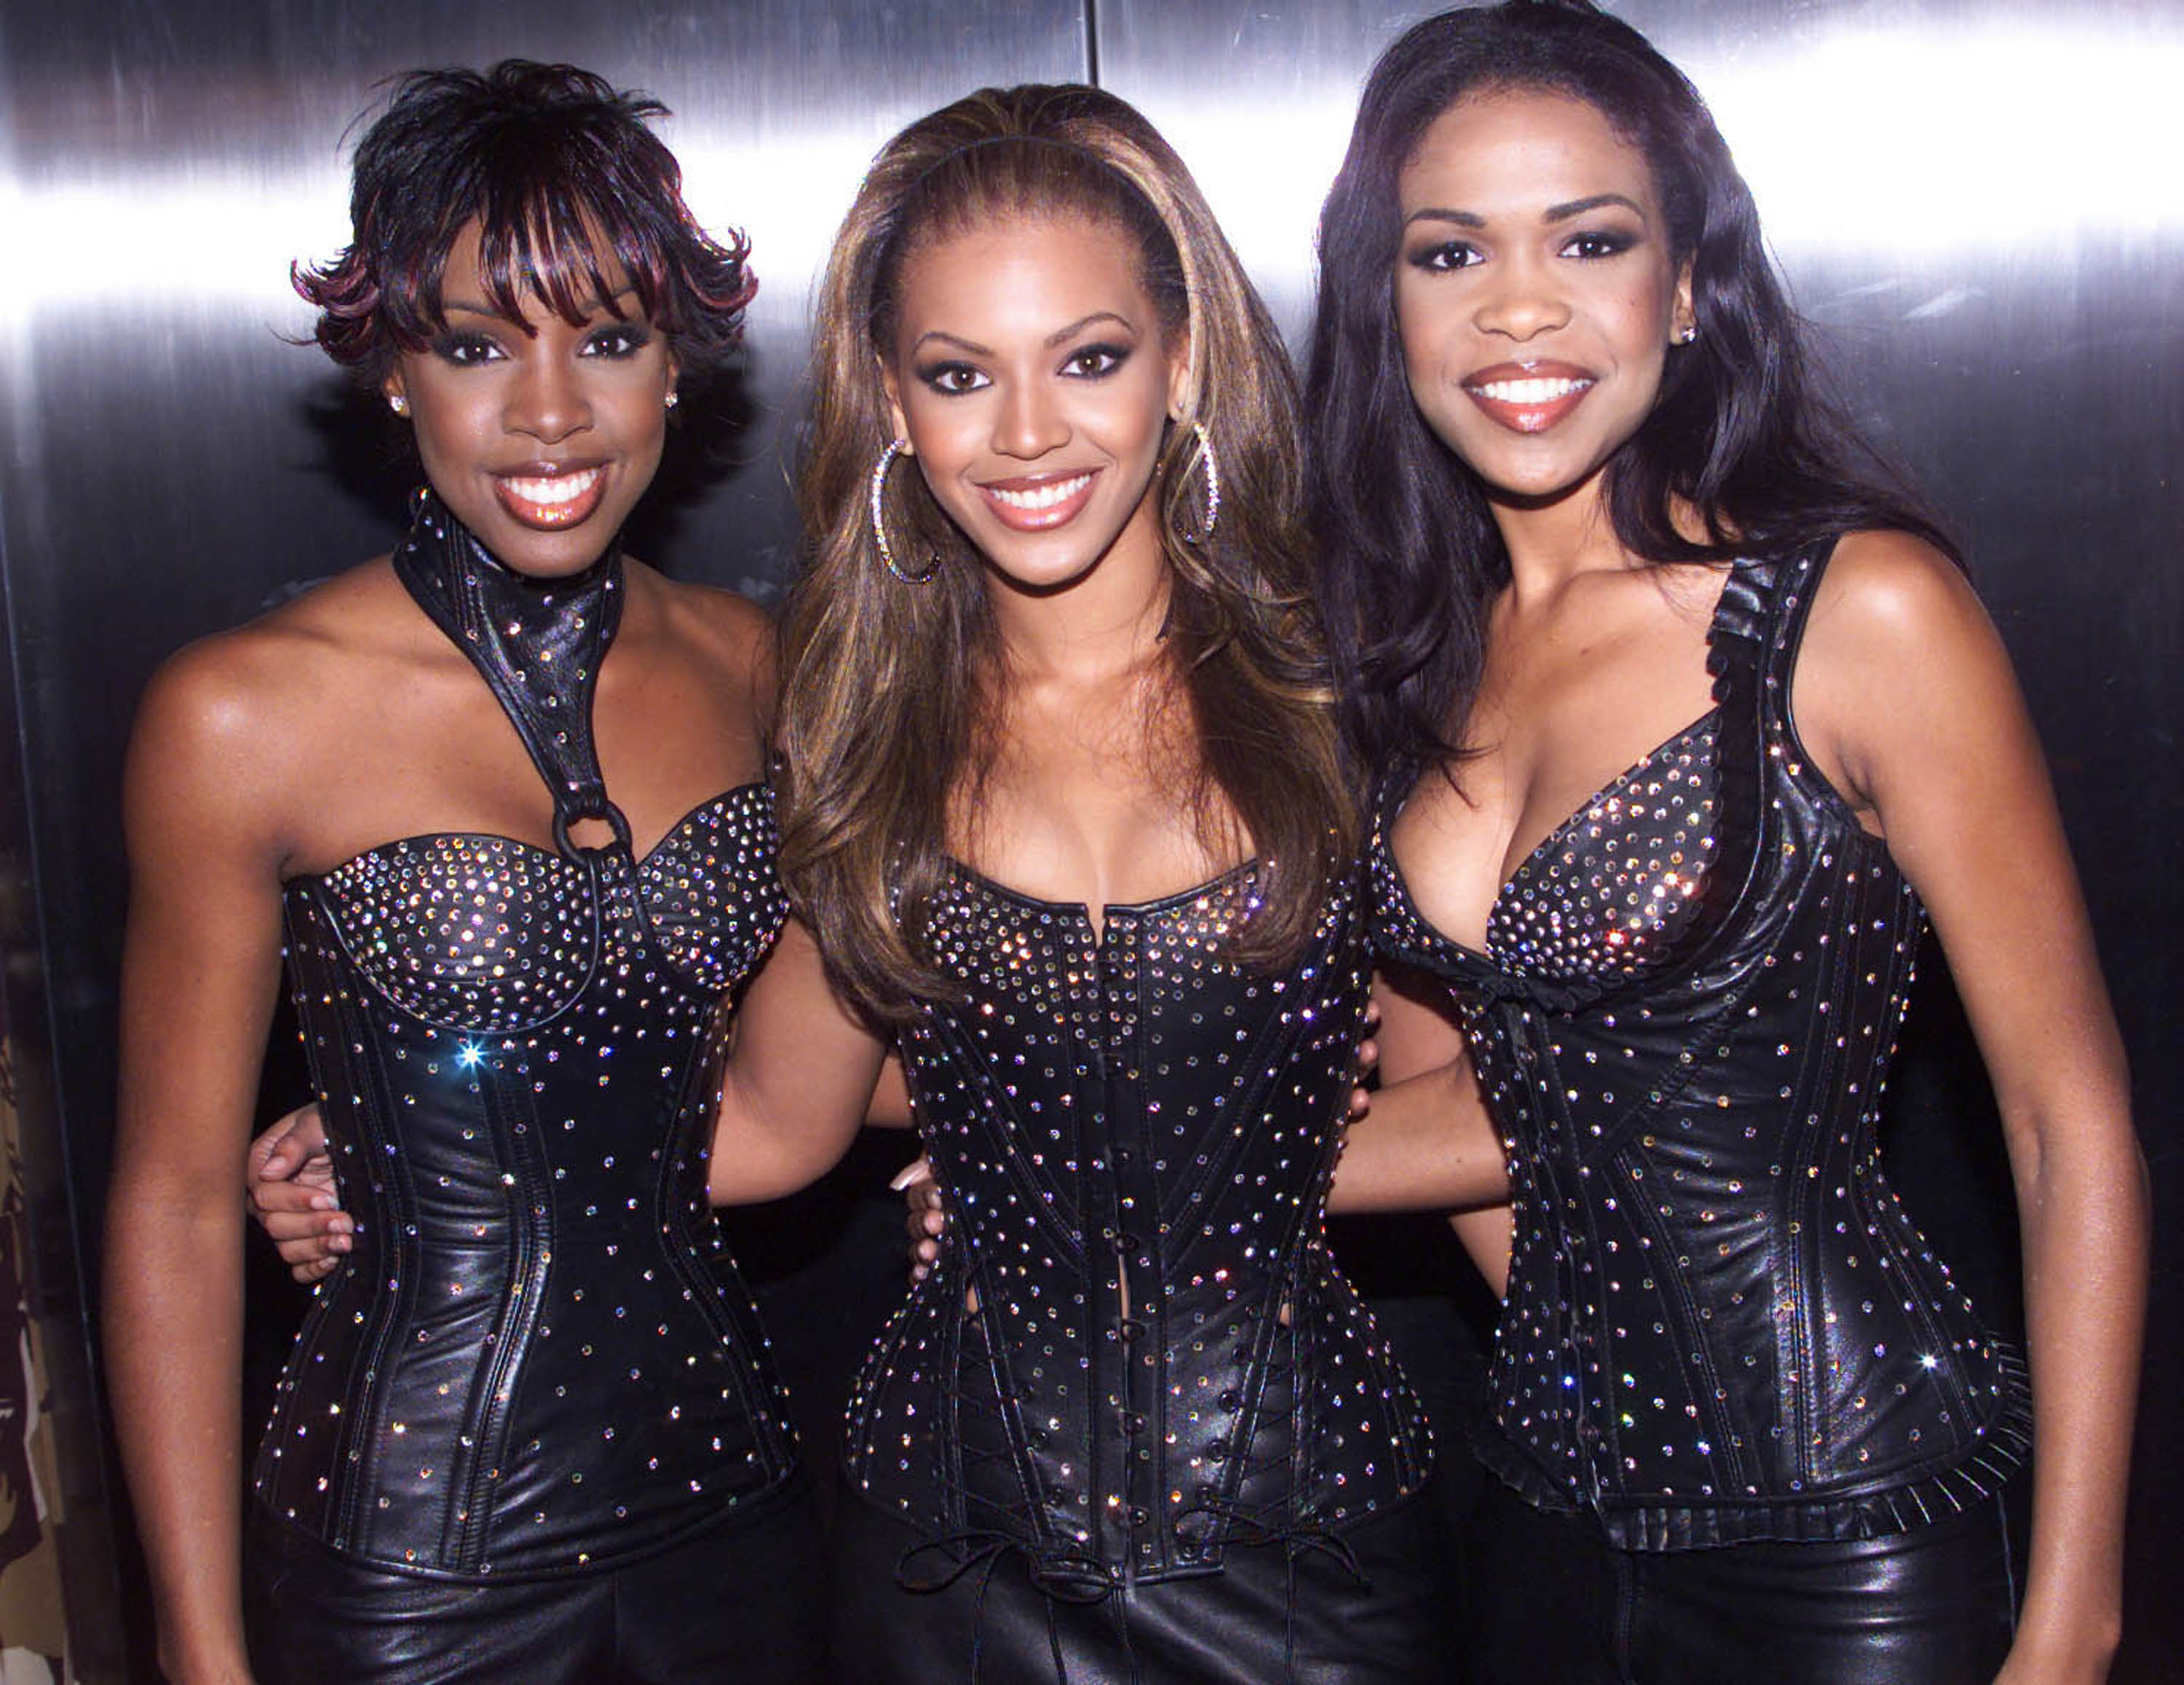 Beyoncé poses with her fellow Destiny's Child members in the early 2000s